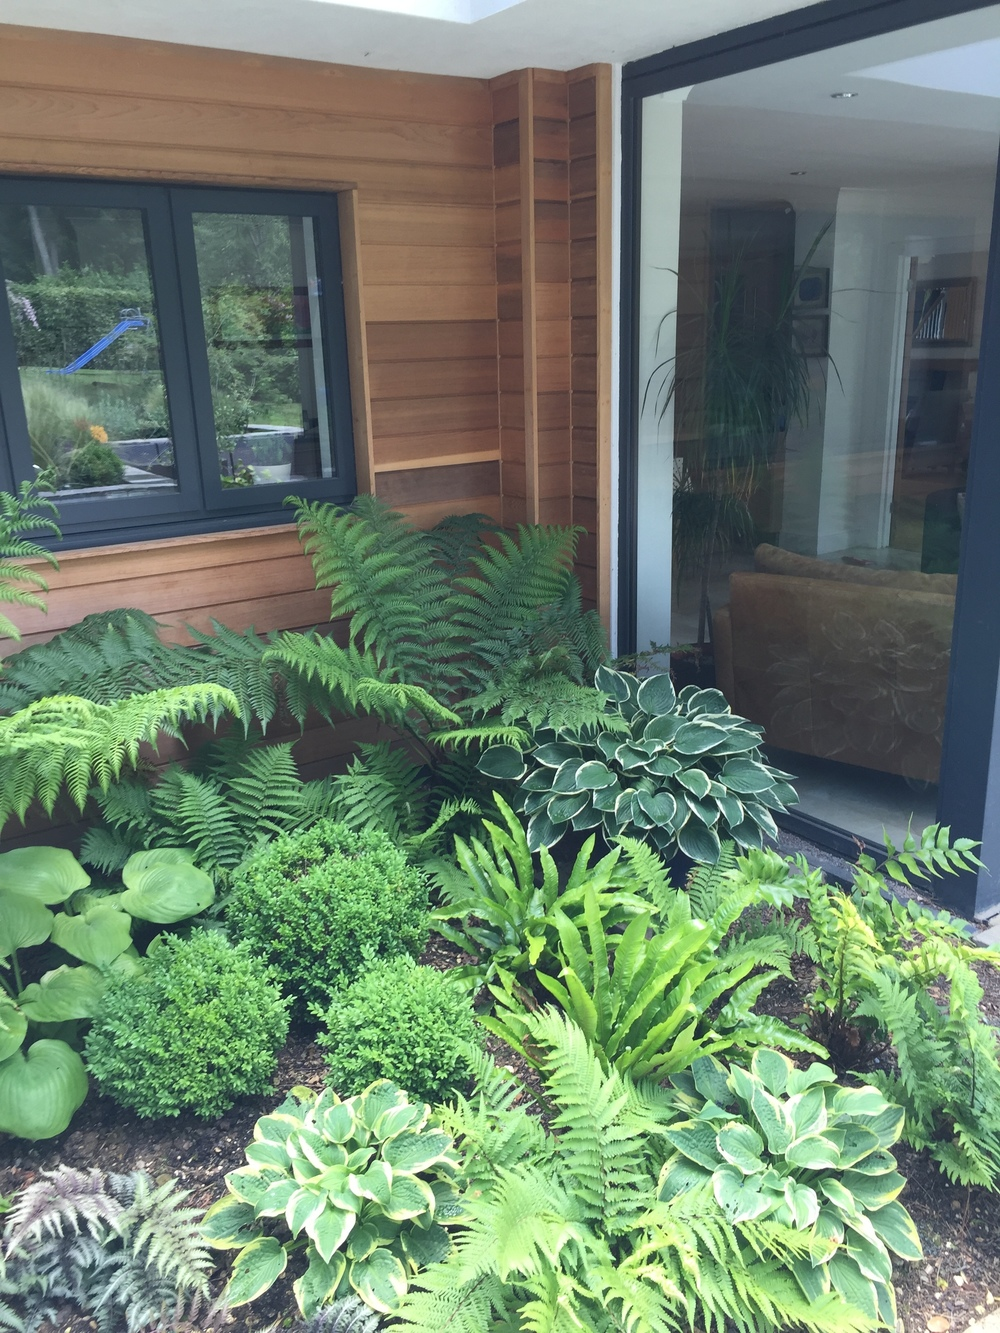 Shady corner - lush ferns and hostas with box balls